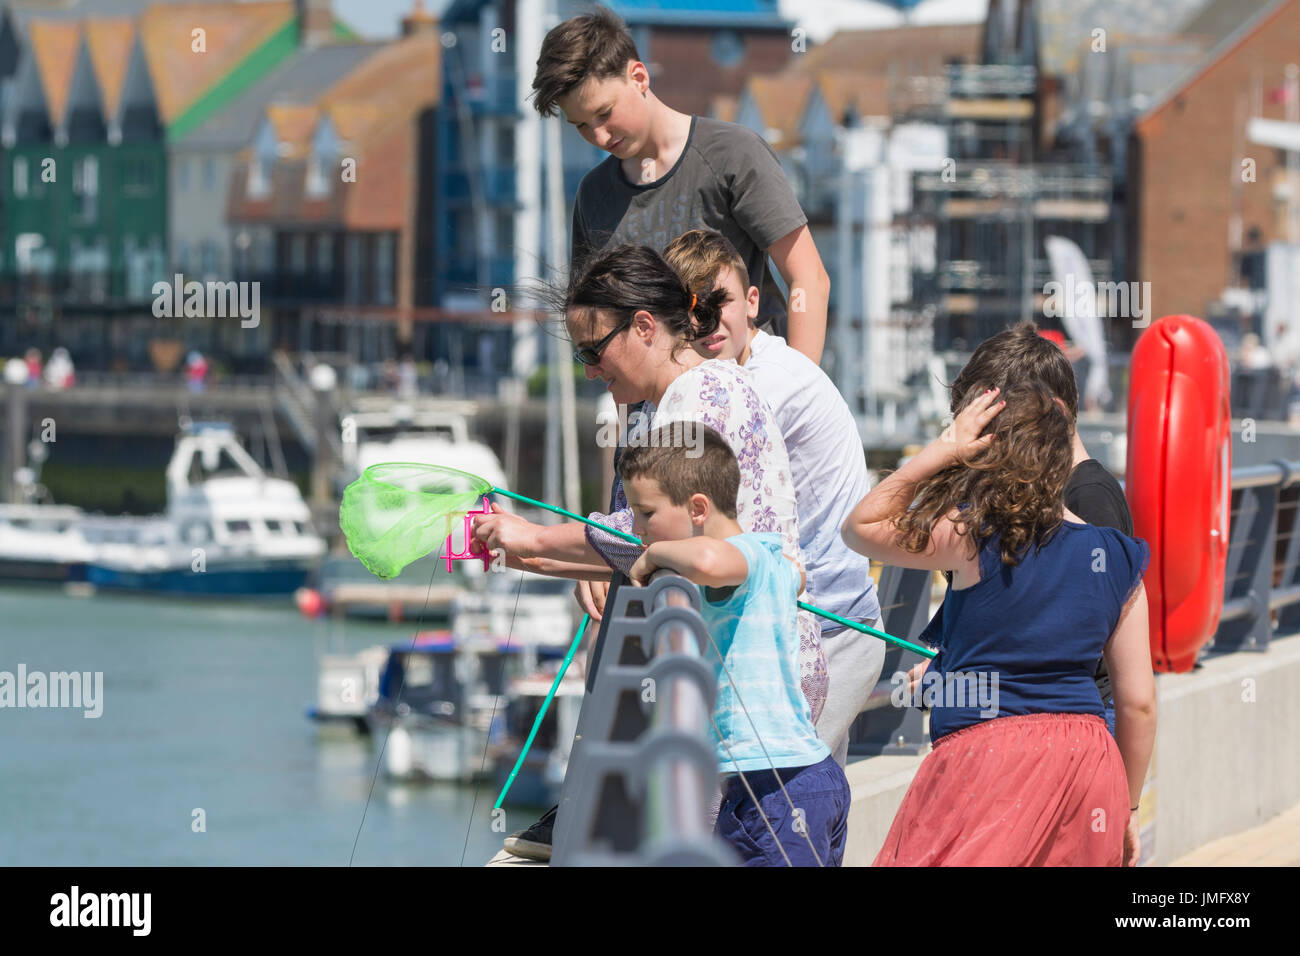 Crab fishing. Young people fishing for crabs by the river in Littlehampton, West Sussex, England, UK. - Stock Image